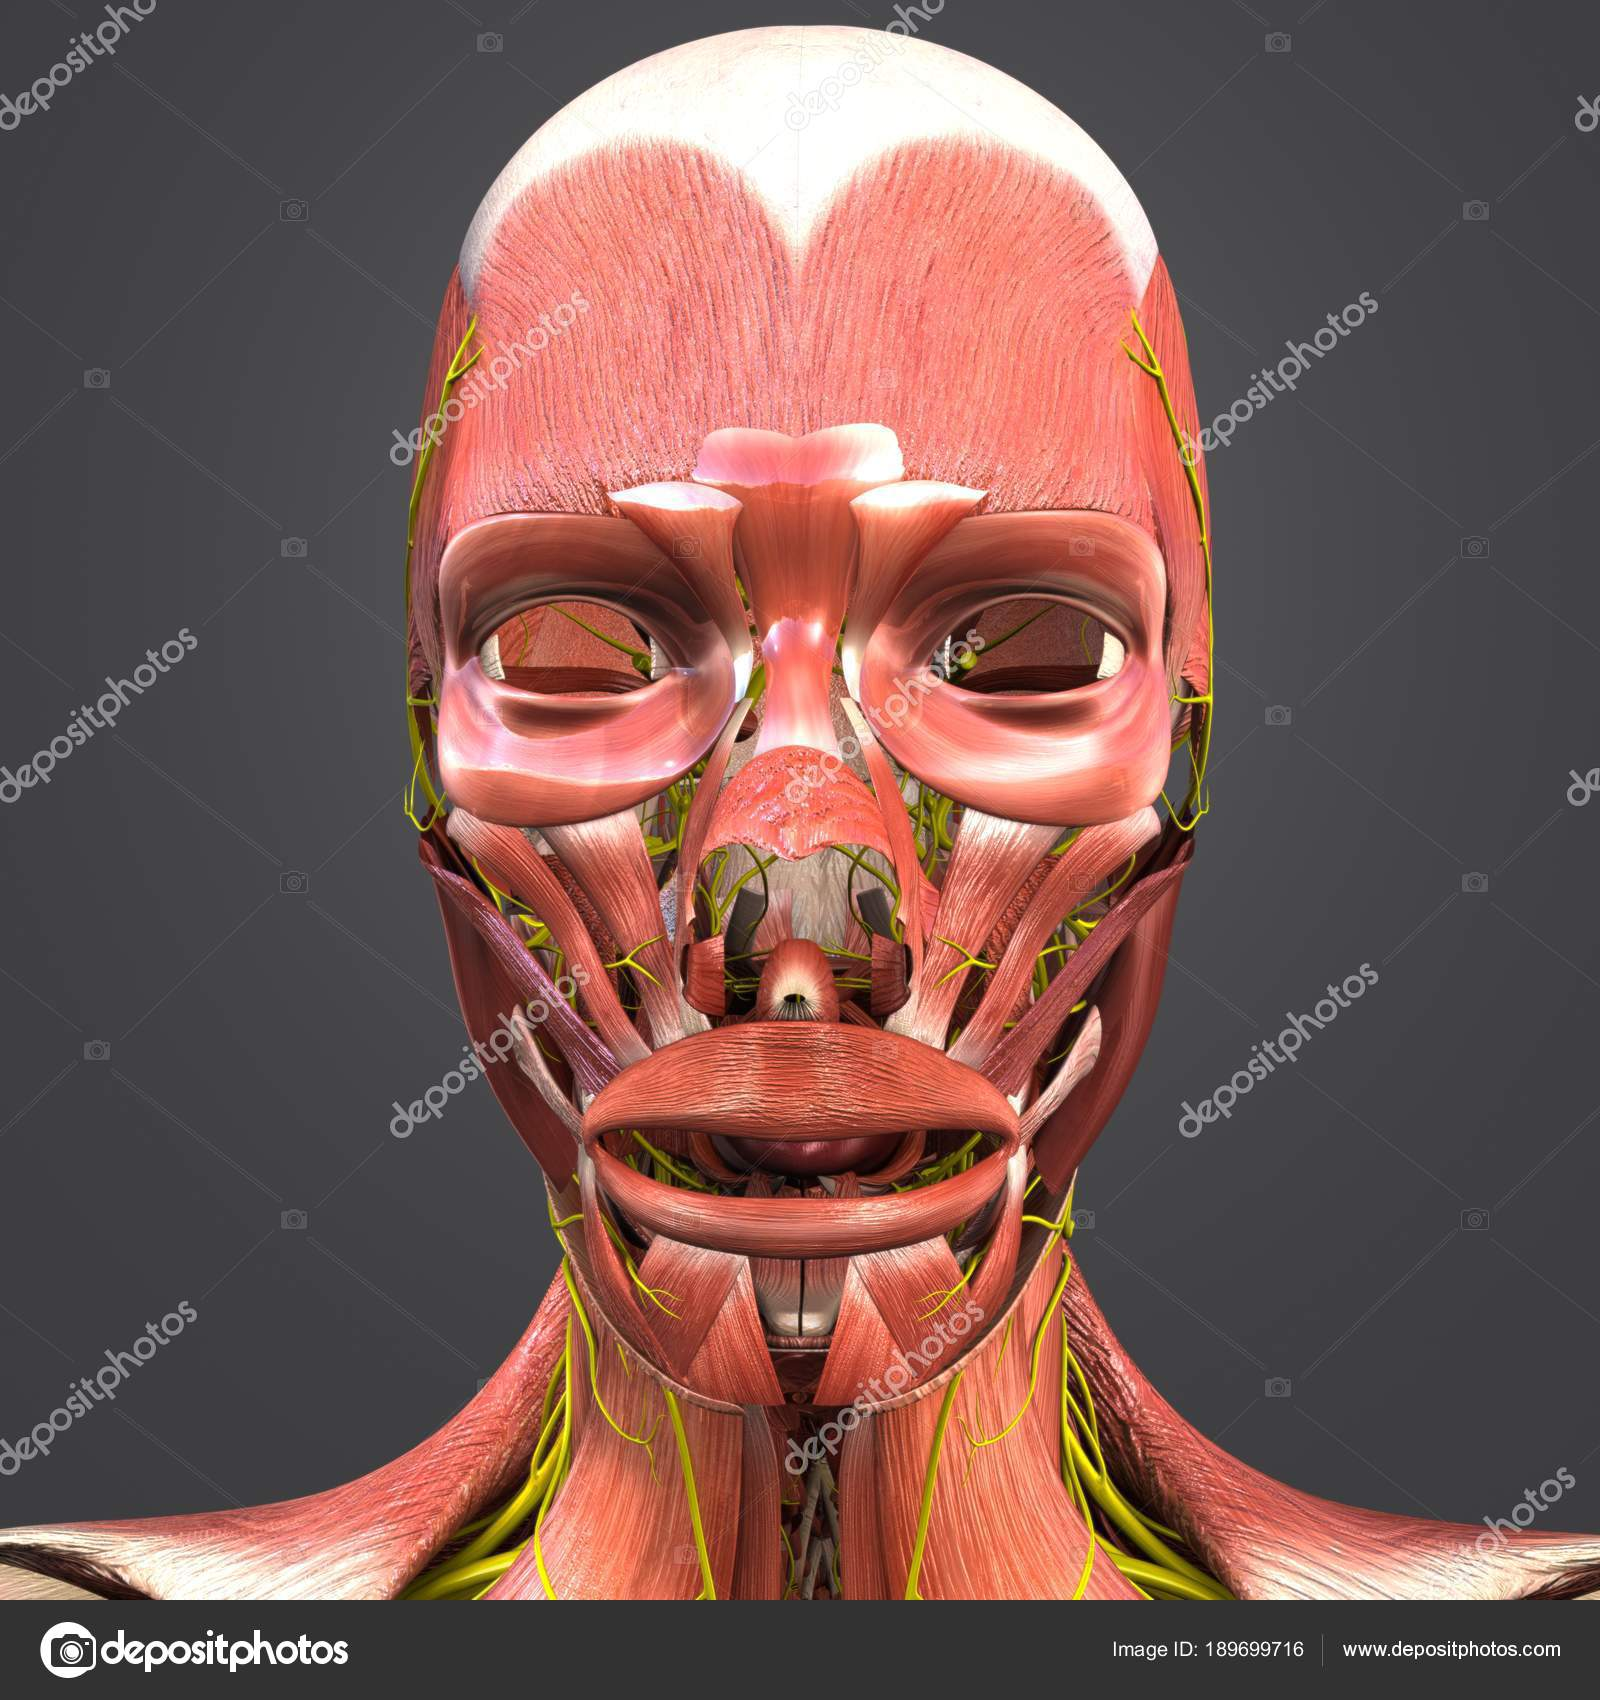 Colorful Medical Illustration Human Facial Muscles Nerves Stock